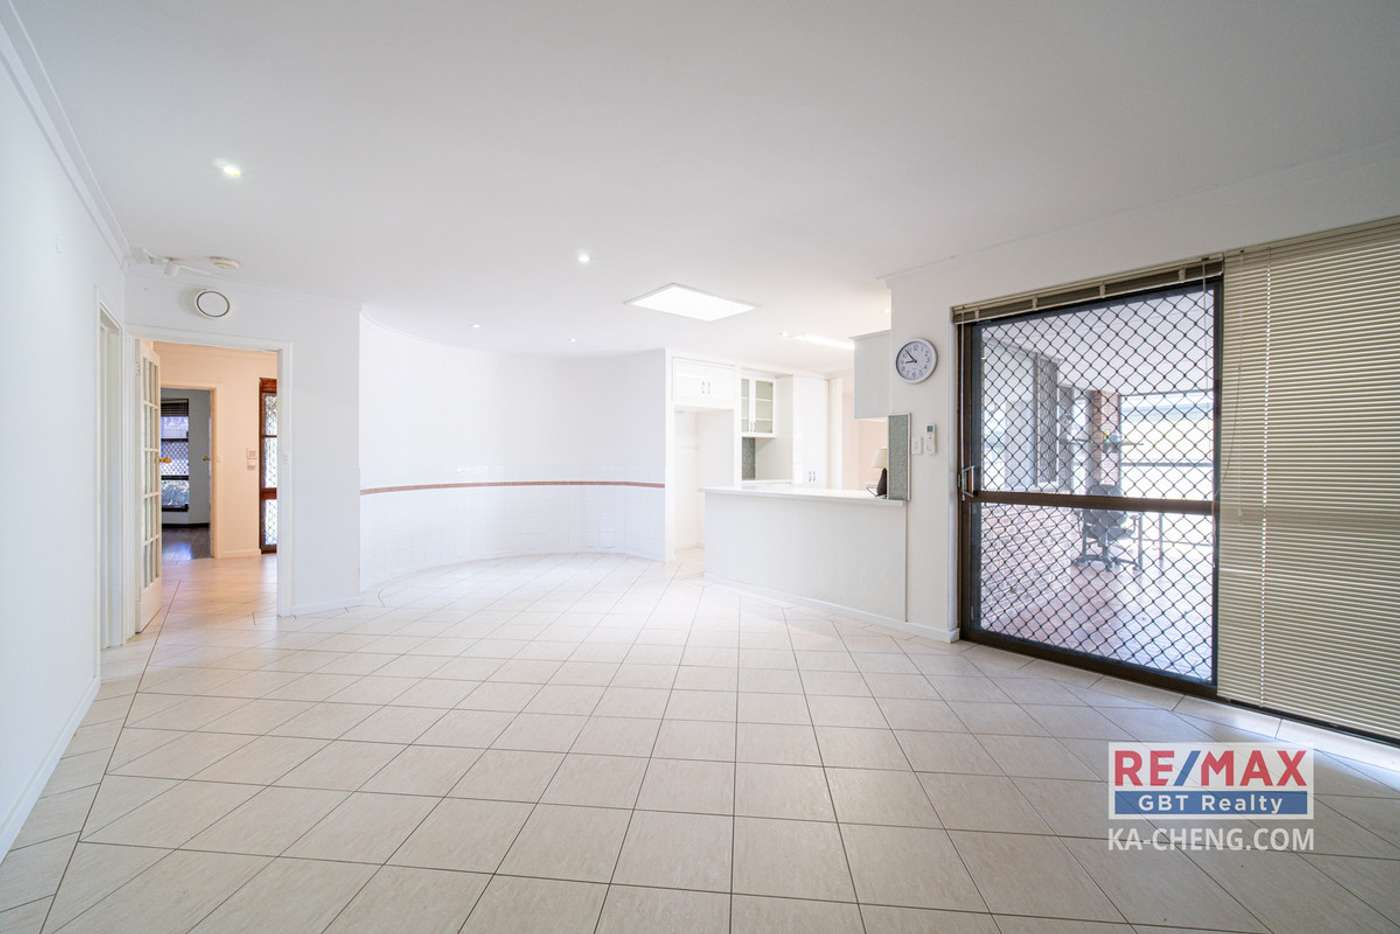 Sixth view of Homely house listing, 62 Alfreda Avenue, Morley WA 6062